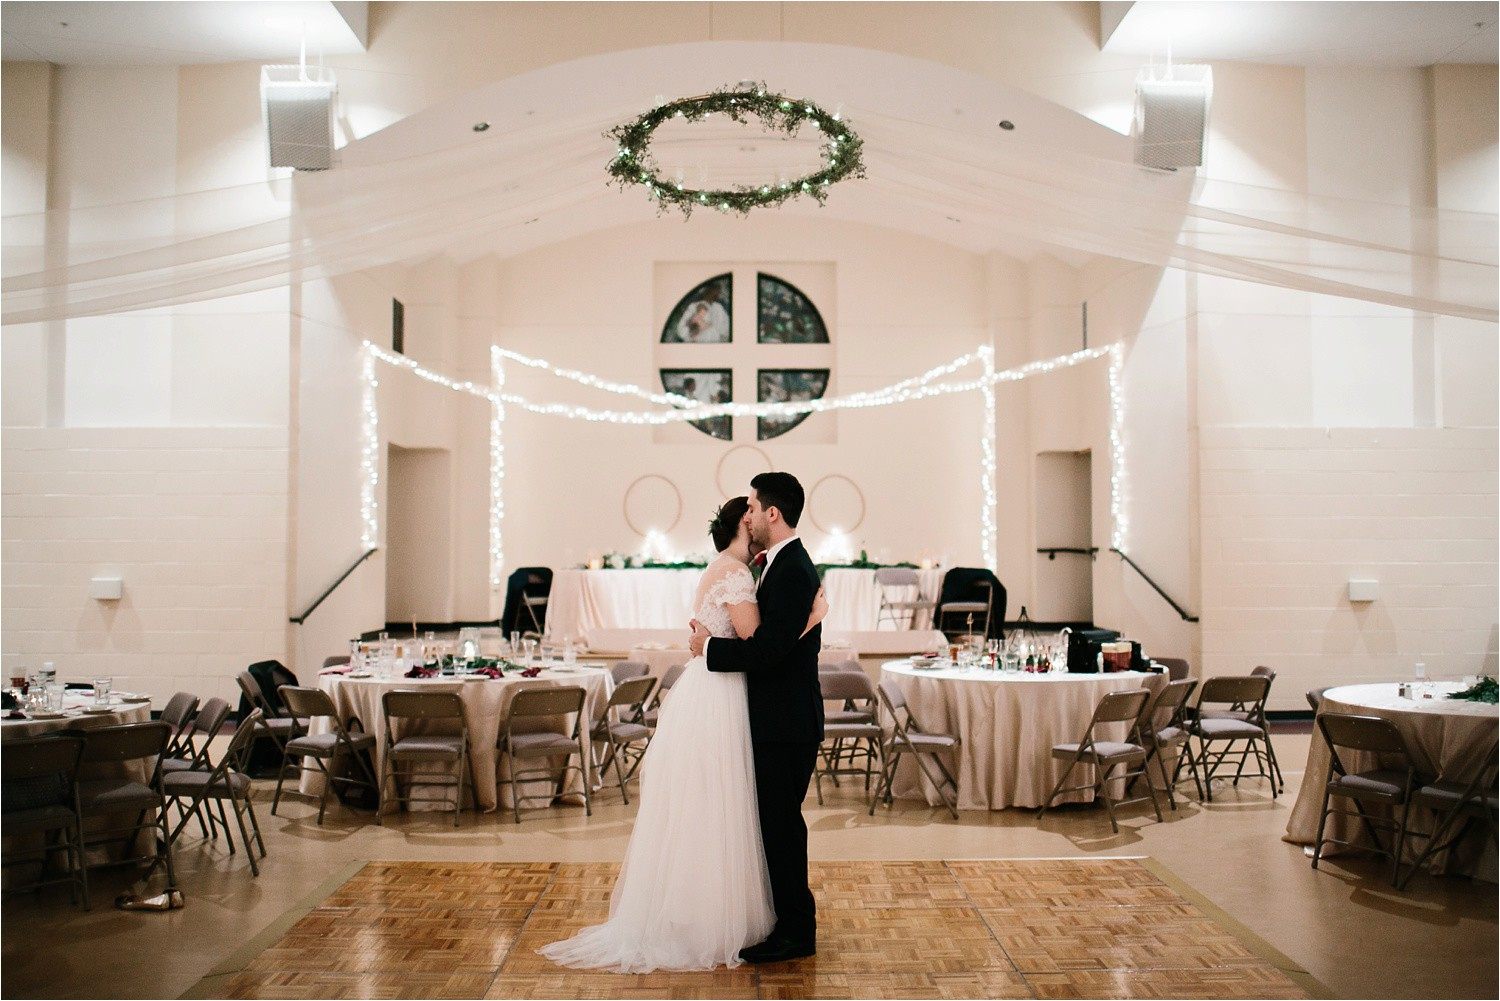 Alaina + Josh __ a wintertime wedding in Houston, TX with Christmas accents and a BHLDN dress by North Texas Wedding Photographer Rachel Meagan Photography _ 88